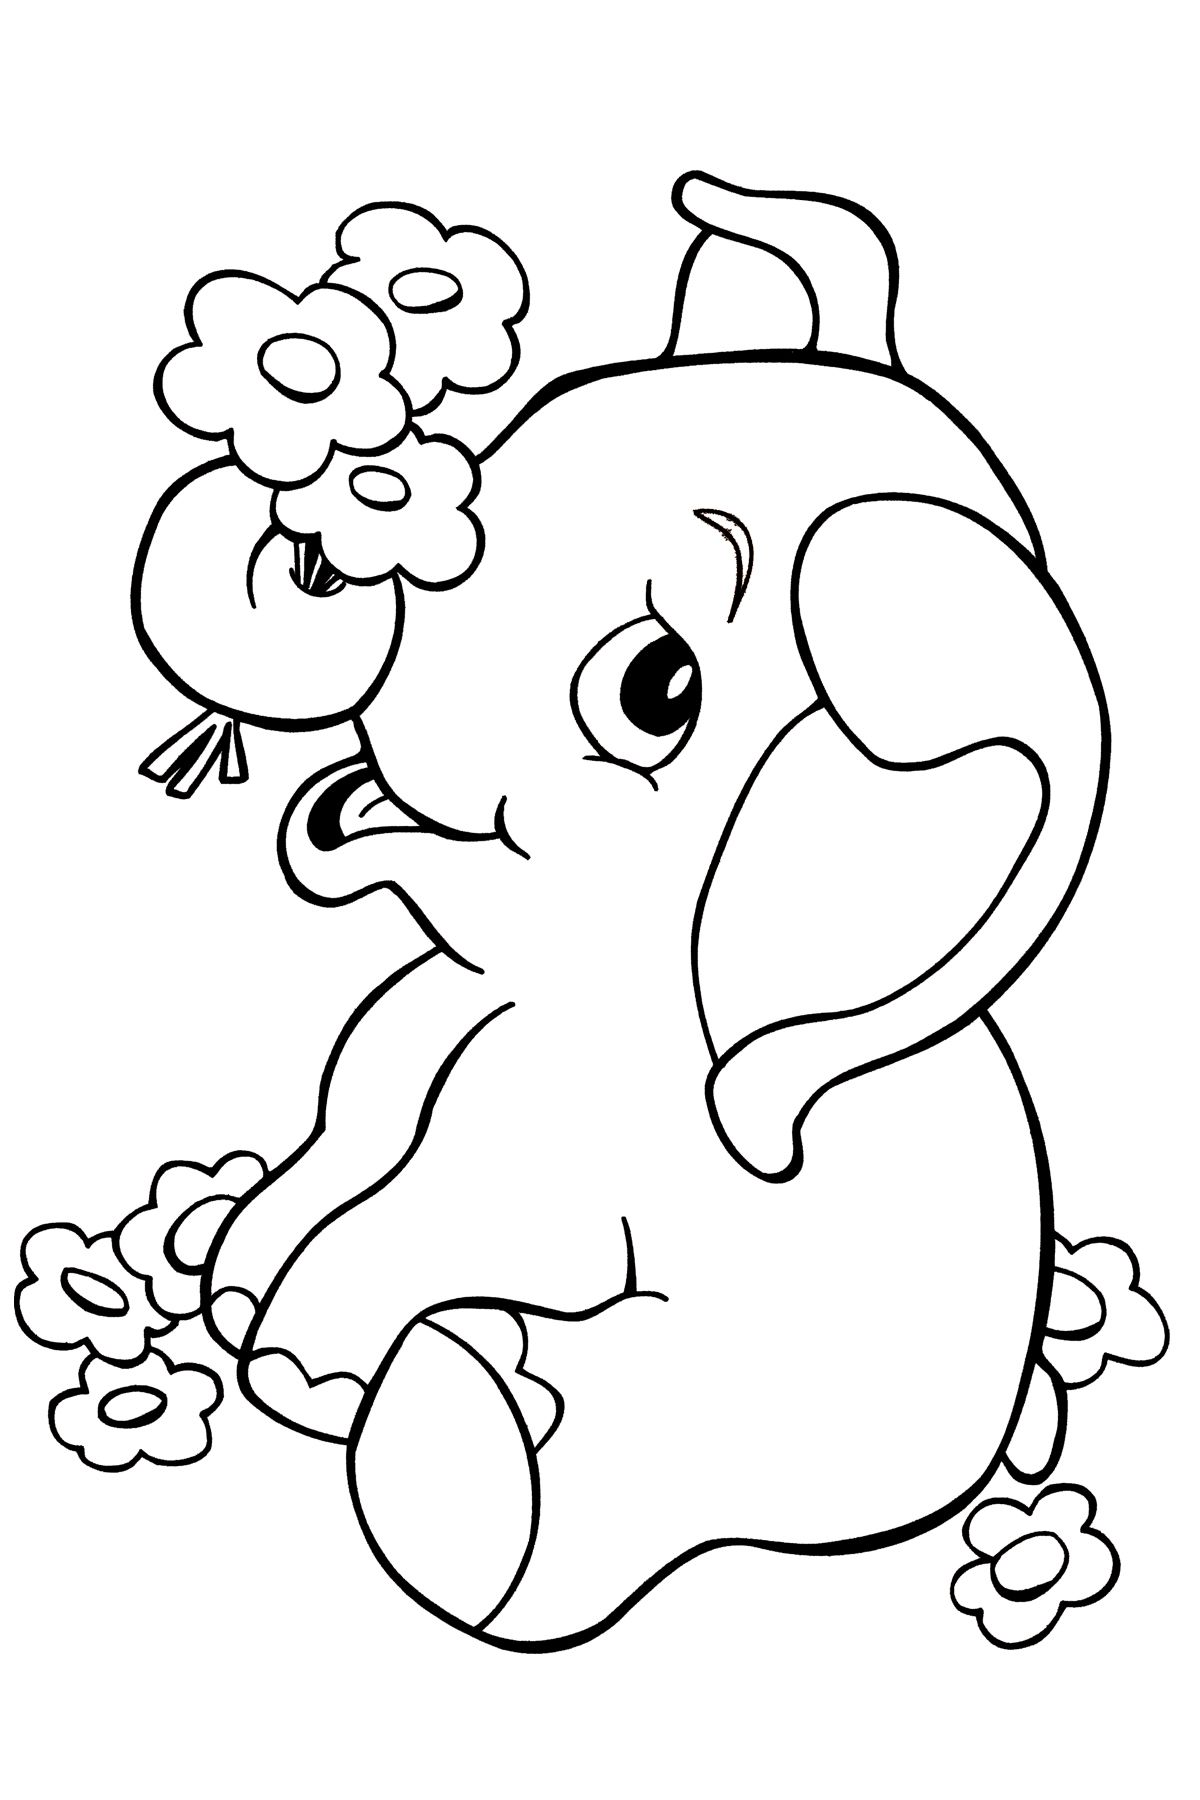 Line Drawings Of Baby Animals : Elephant line art google search sewing inspiration